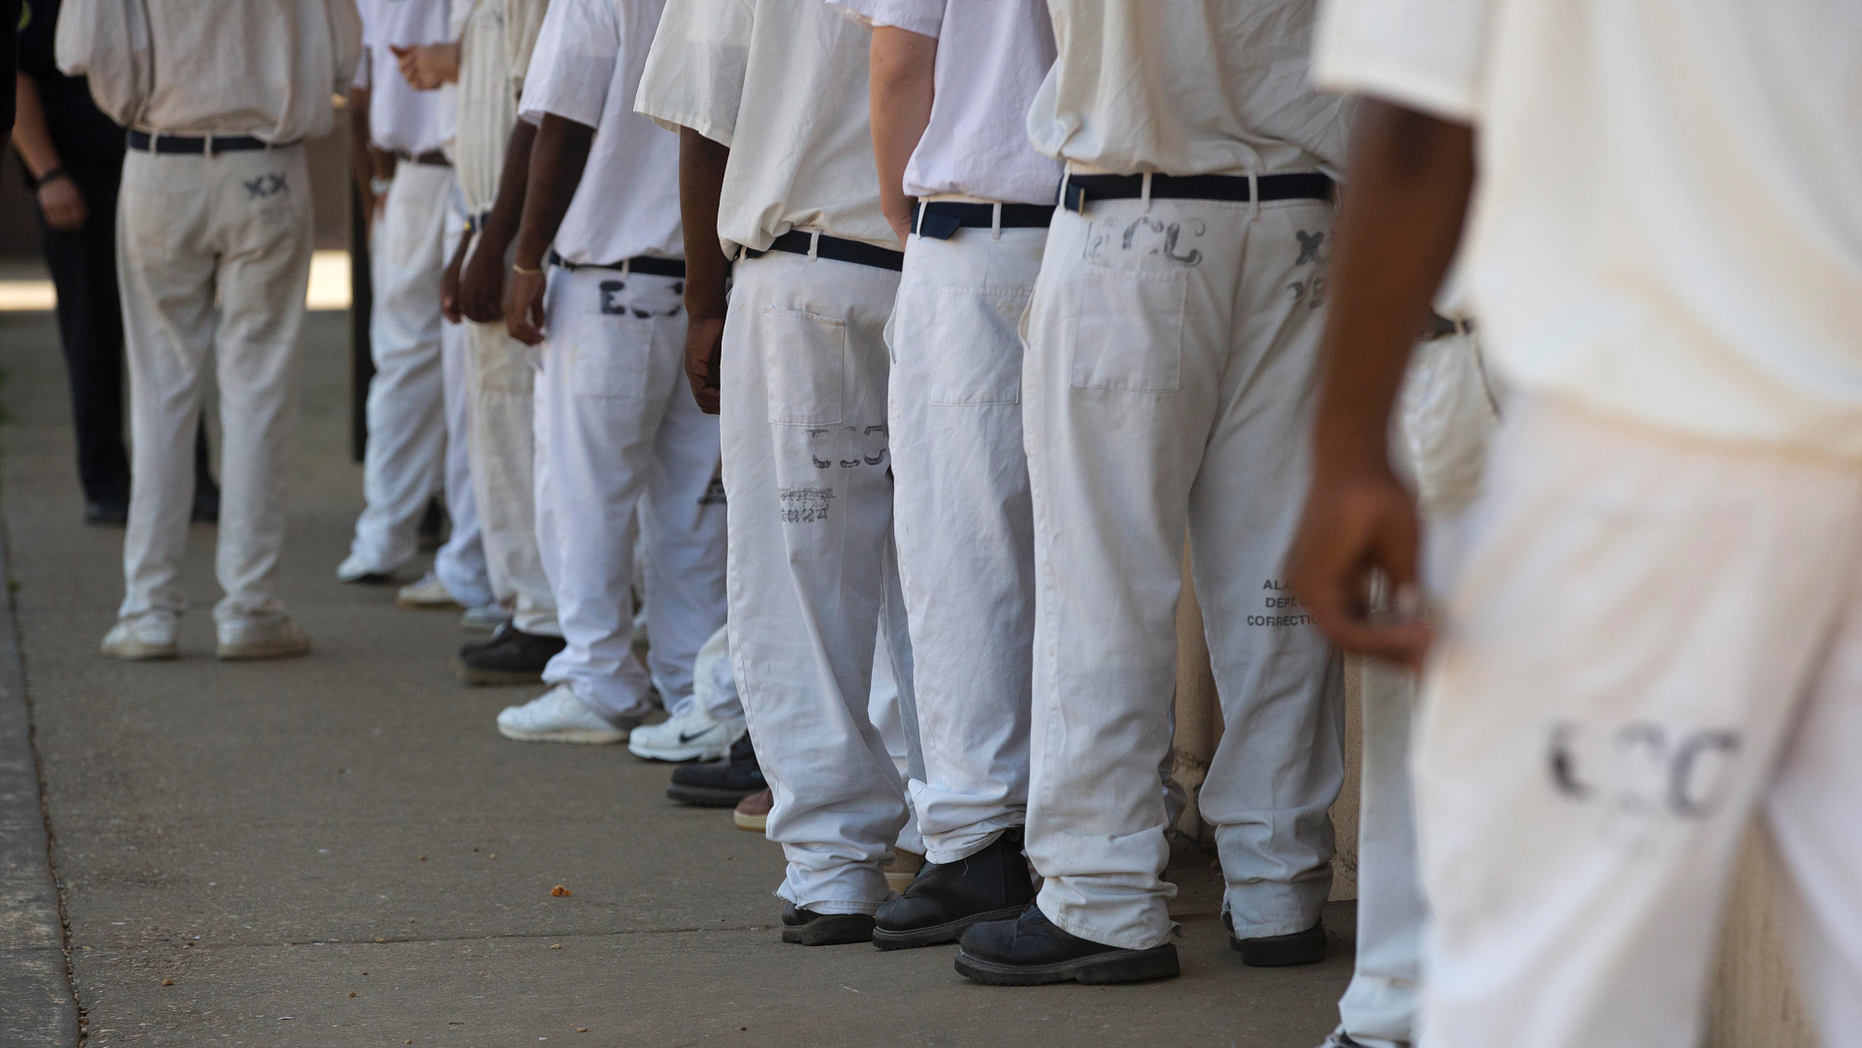 """FILE- In this June 18, 2015 file photo, prisoners stand in a crowded lunch line during a prison tour at Elmore Correctional Facility in Elmore, Ala. he Justice Department has determined that Alabama's prisons are violating the Constitution by failing to protect inmates from violence and sexual abuse and by housing them in unsafe and overcrowded facilities, according to a scathing report Wednesda, April 3, 2019, that described the problems as """"severe"""" and """"systemic."""". (AP Photo/Brynn Anderson)"""